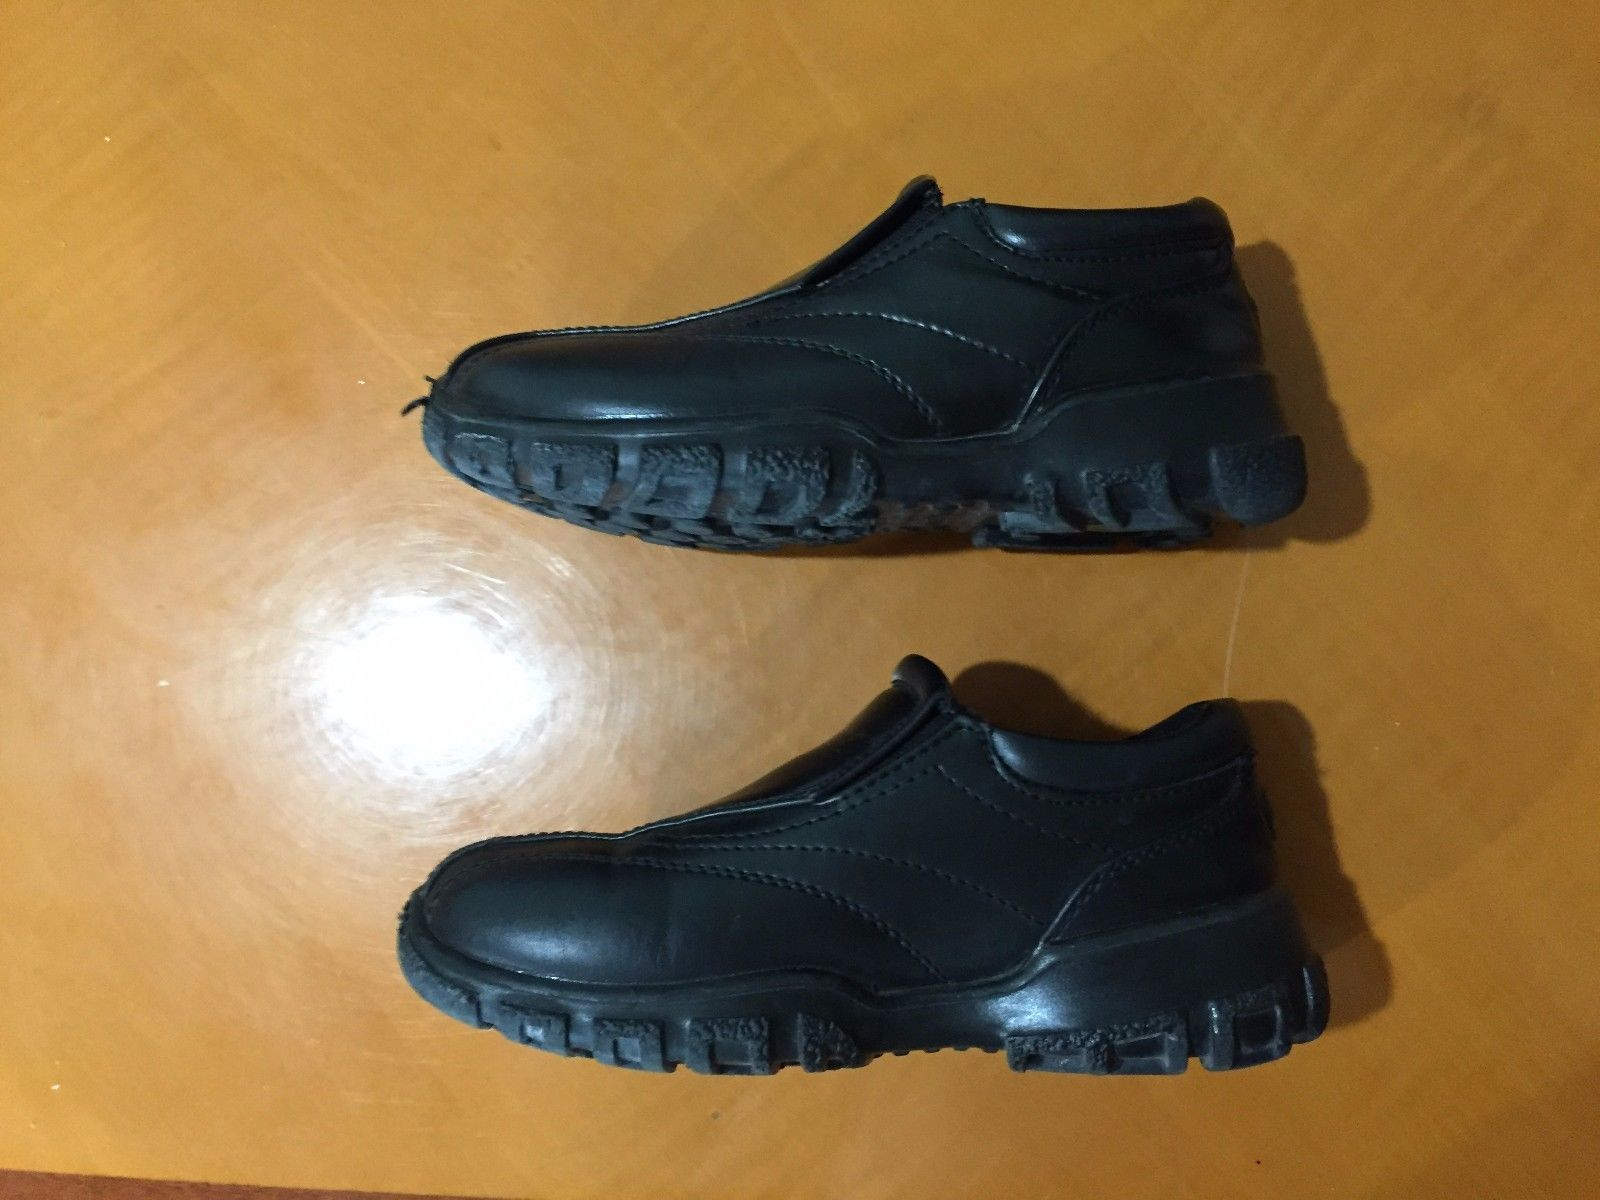 ac0743a73b594 Kids Boys Deer Stag Black Slip On Shoes Loafers Size 12M 12 Medium